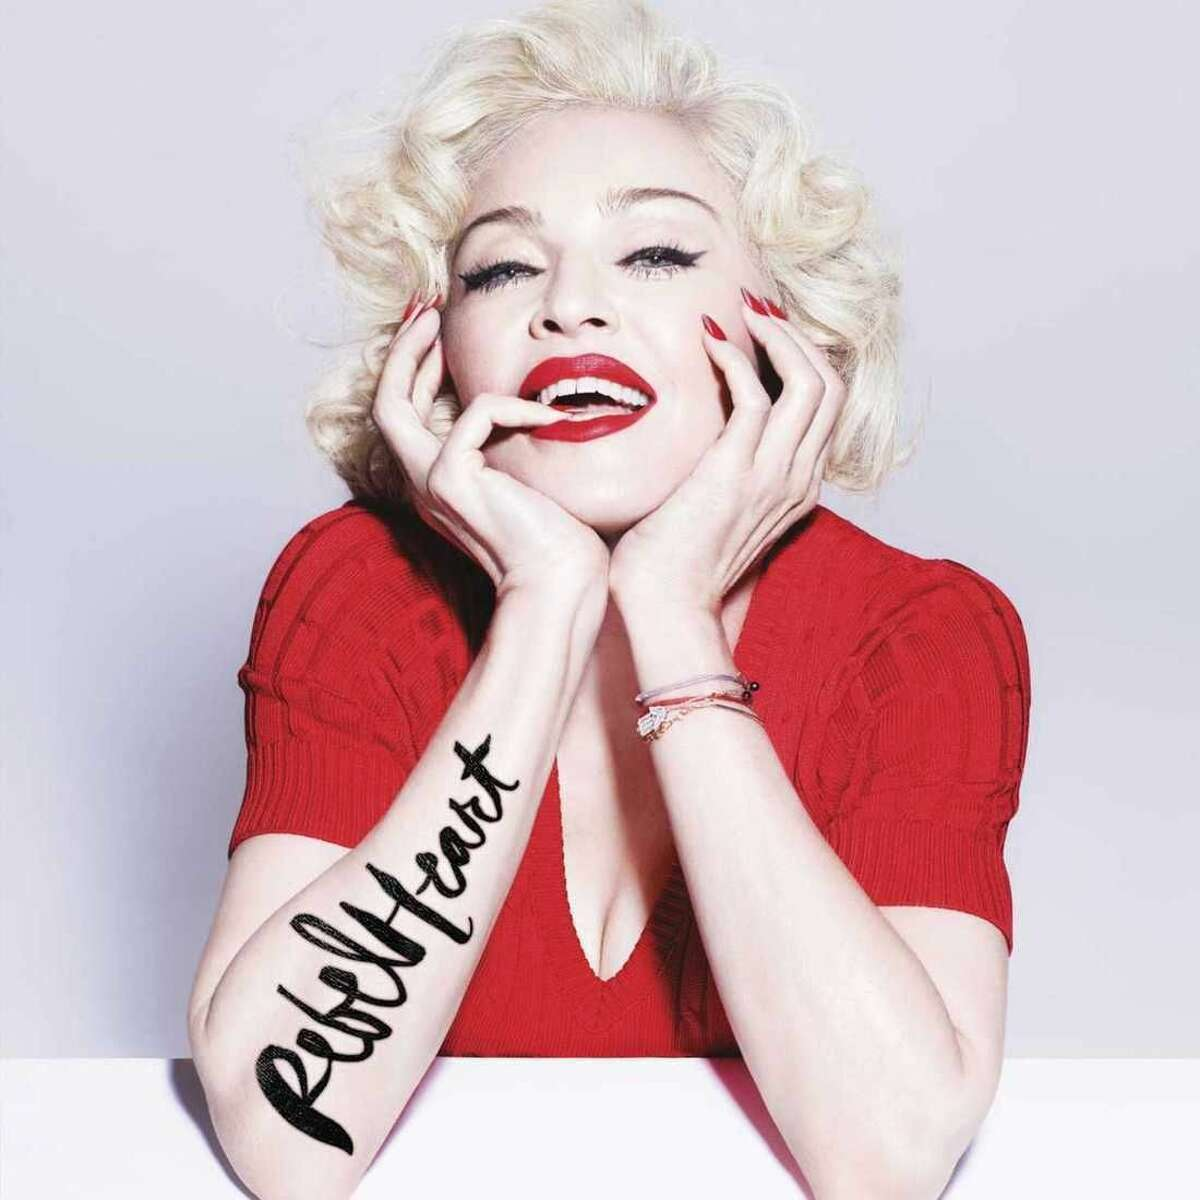 """This CD cover image released by Interscope Records shows the delux album """"Rebel Heart,"""" the latest release by Madonna. (AP Photo/Interscope Records)"""